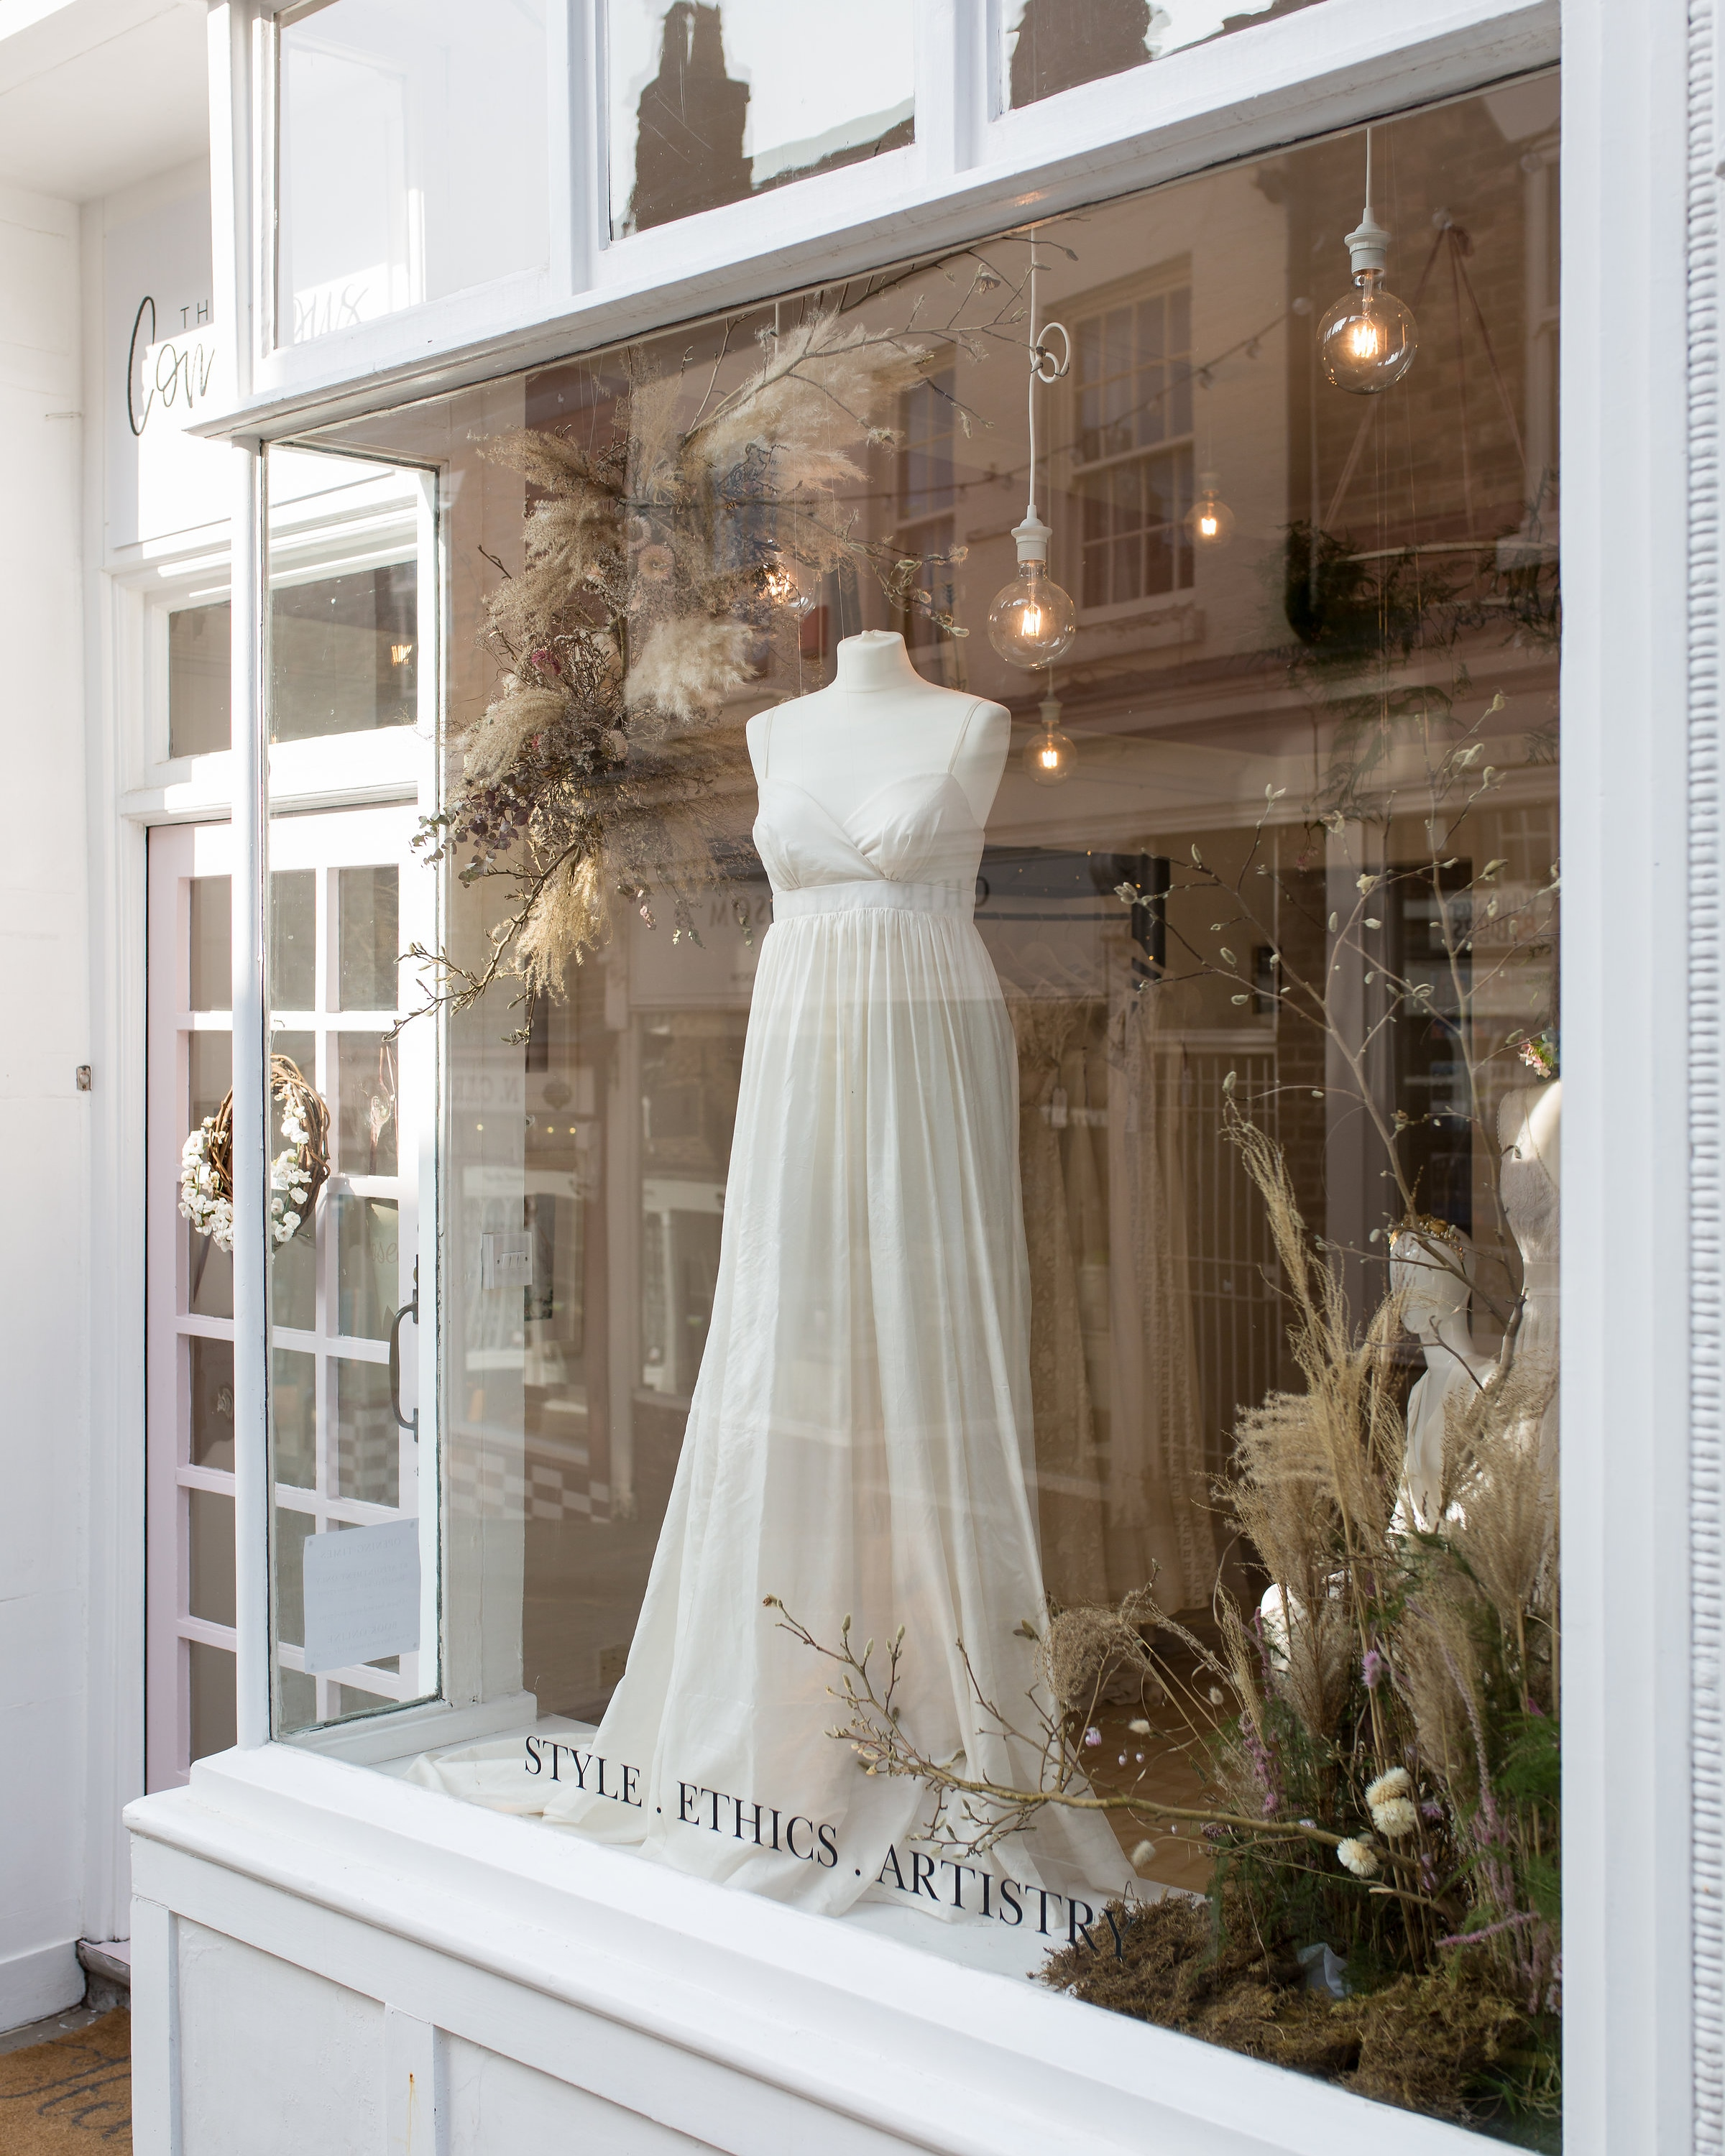 Shop window for The Conscious Bride- an ethical wedding shop. Photo courtesy of Charlotte Palazzo Photography.